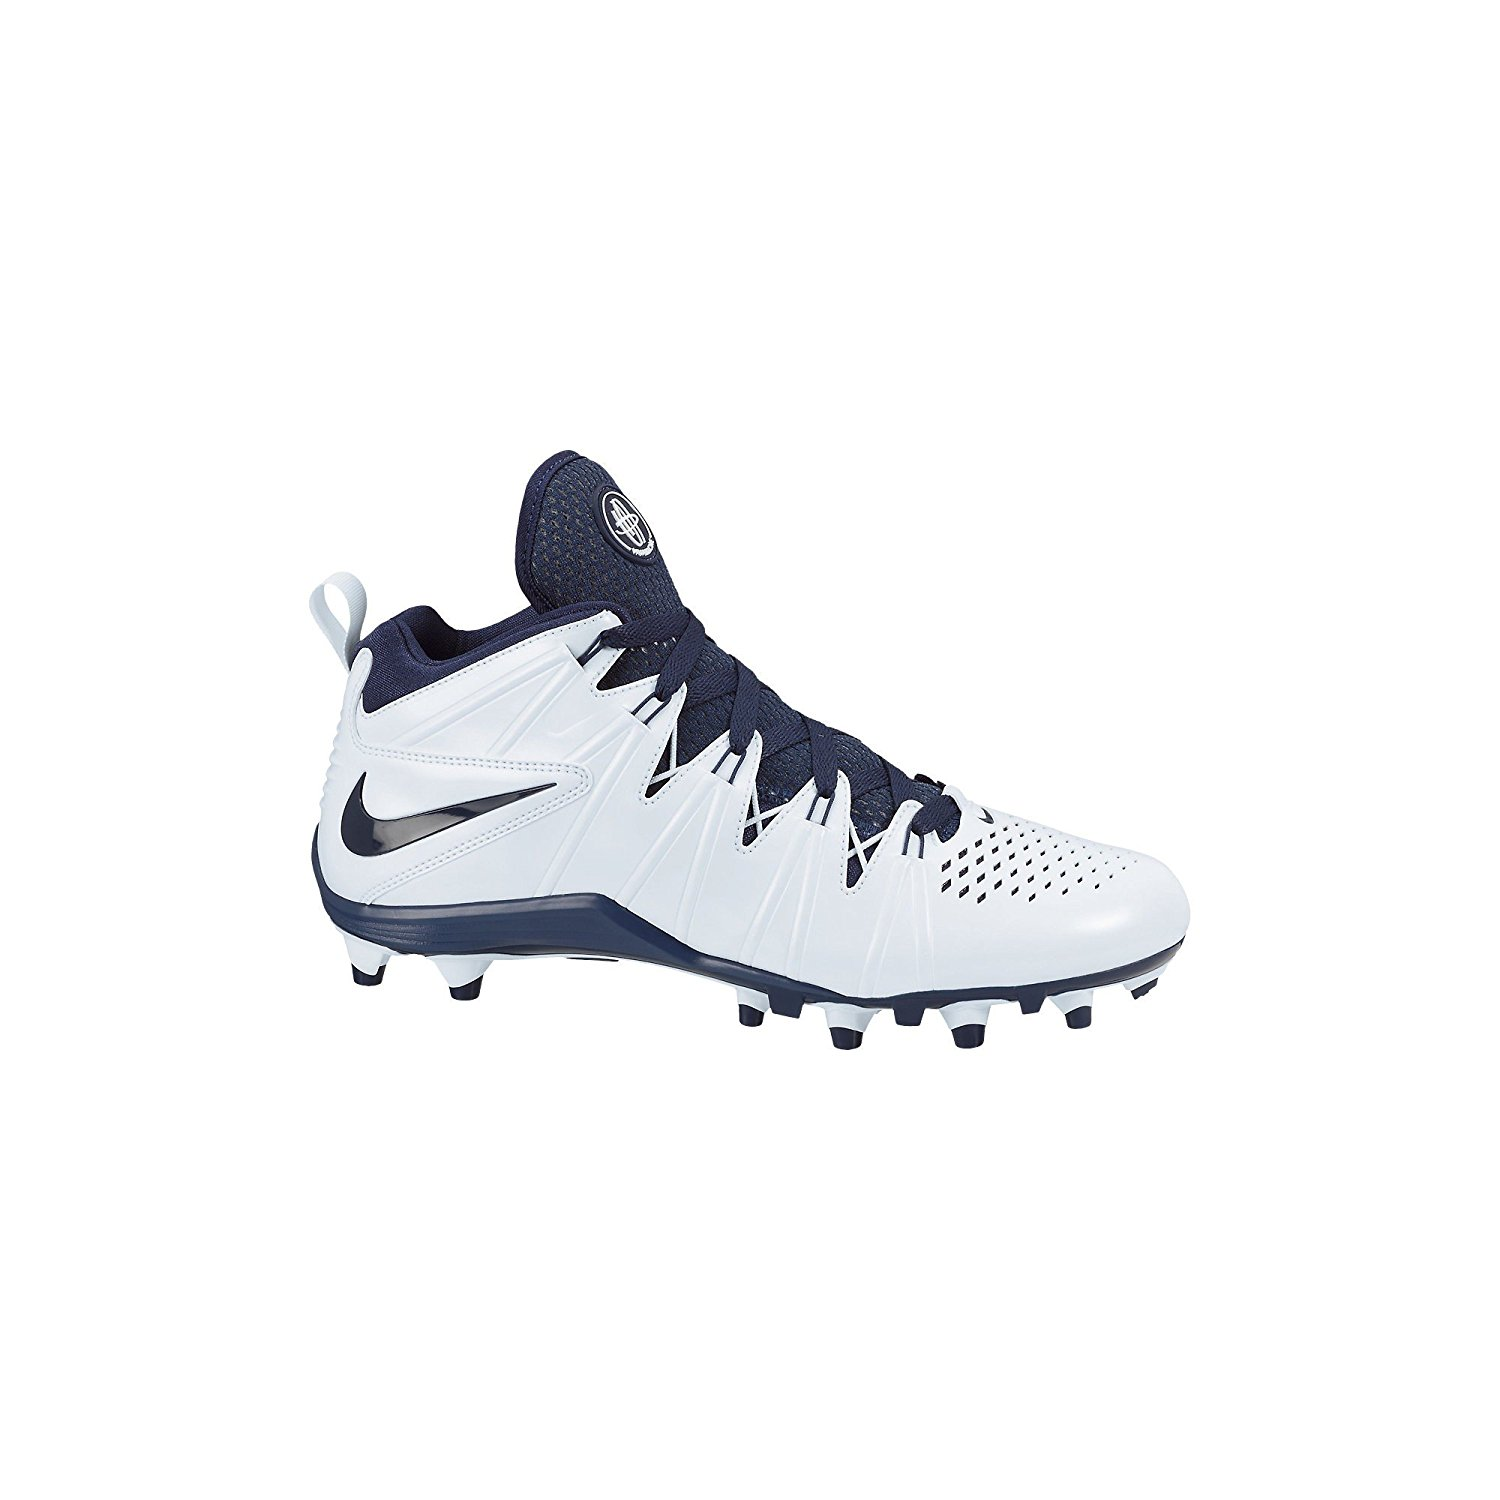 Get Quotations · Mens Nike Huarache 4 Lax 616296 141 White Navy Football  Cleat Shoe (MEN SIZE 10